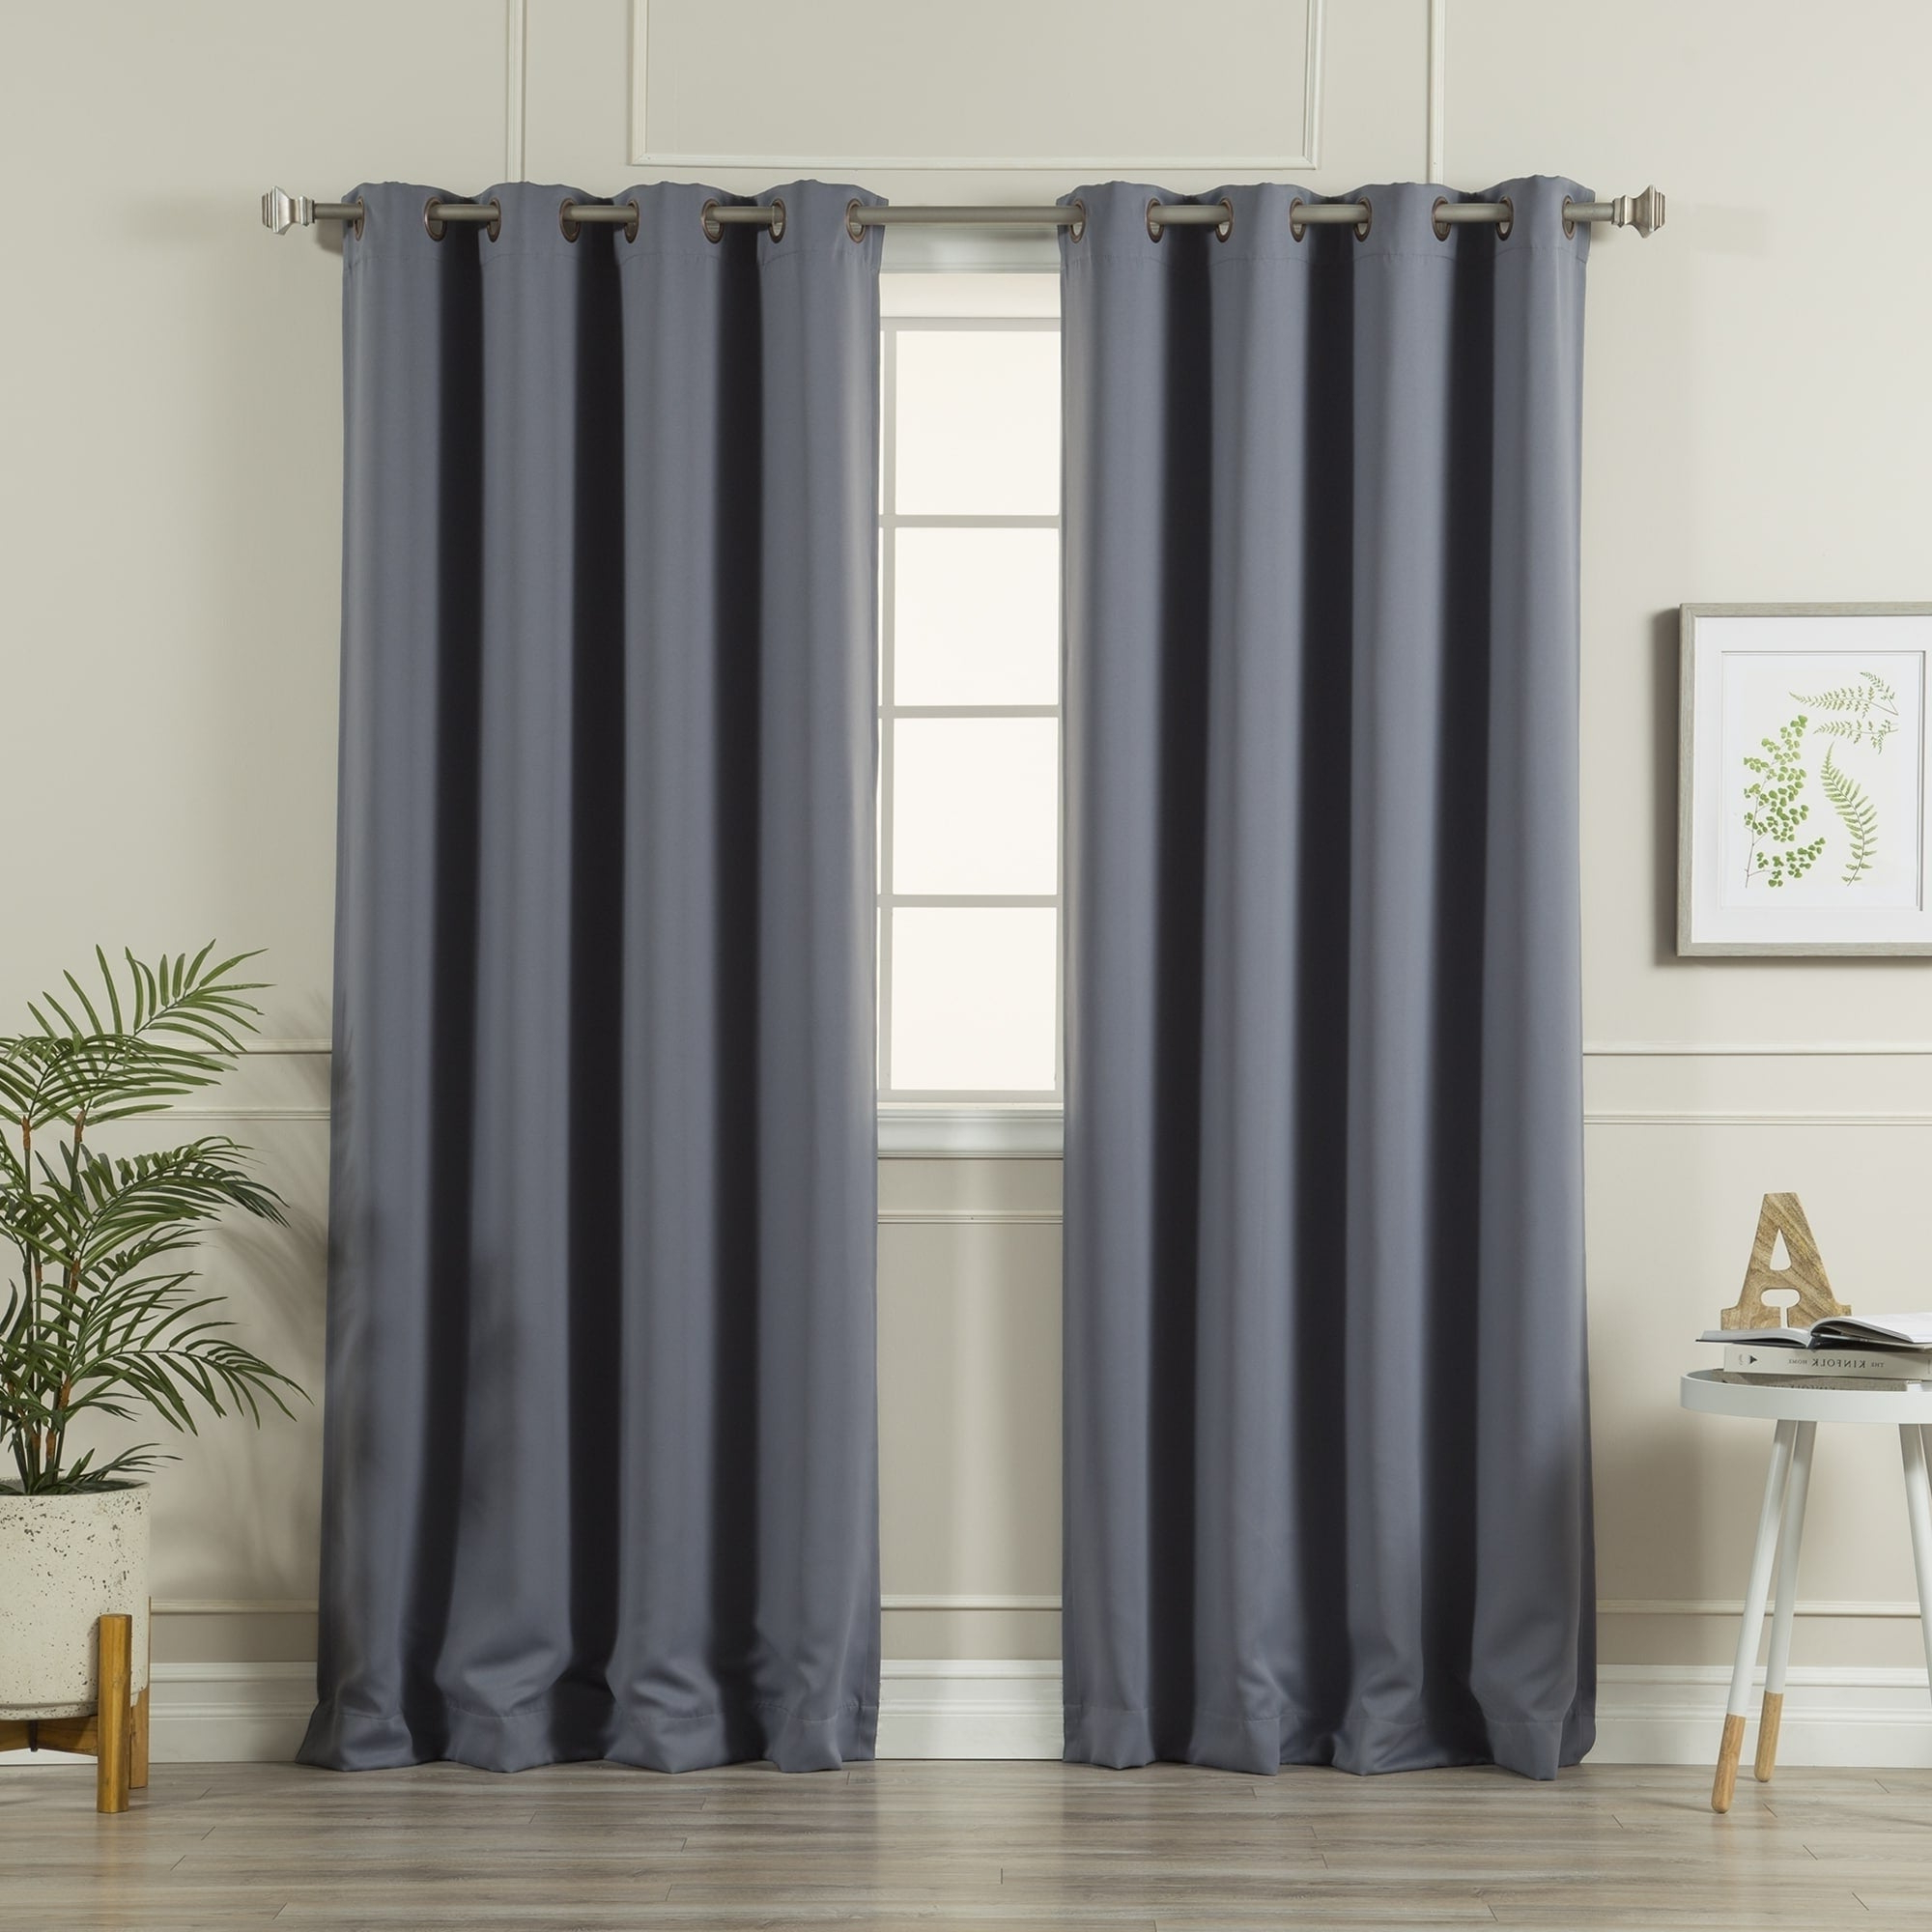 Fashionable Grommet Top Thermal Insulated Blackout Curtain Panel Pairs Pertaining To Aurora Home Antique Silver Grommet Top Thermal Insulated Blackout Curtain  Panel Pair (Gallery 13 of 20)